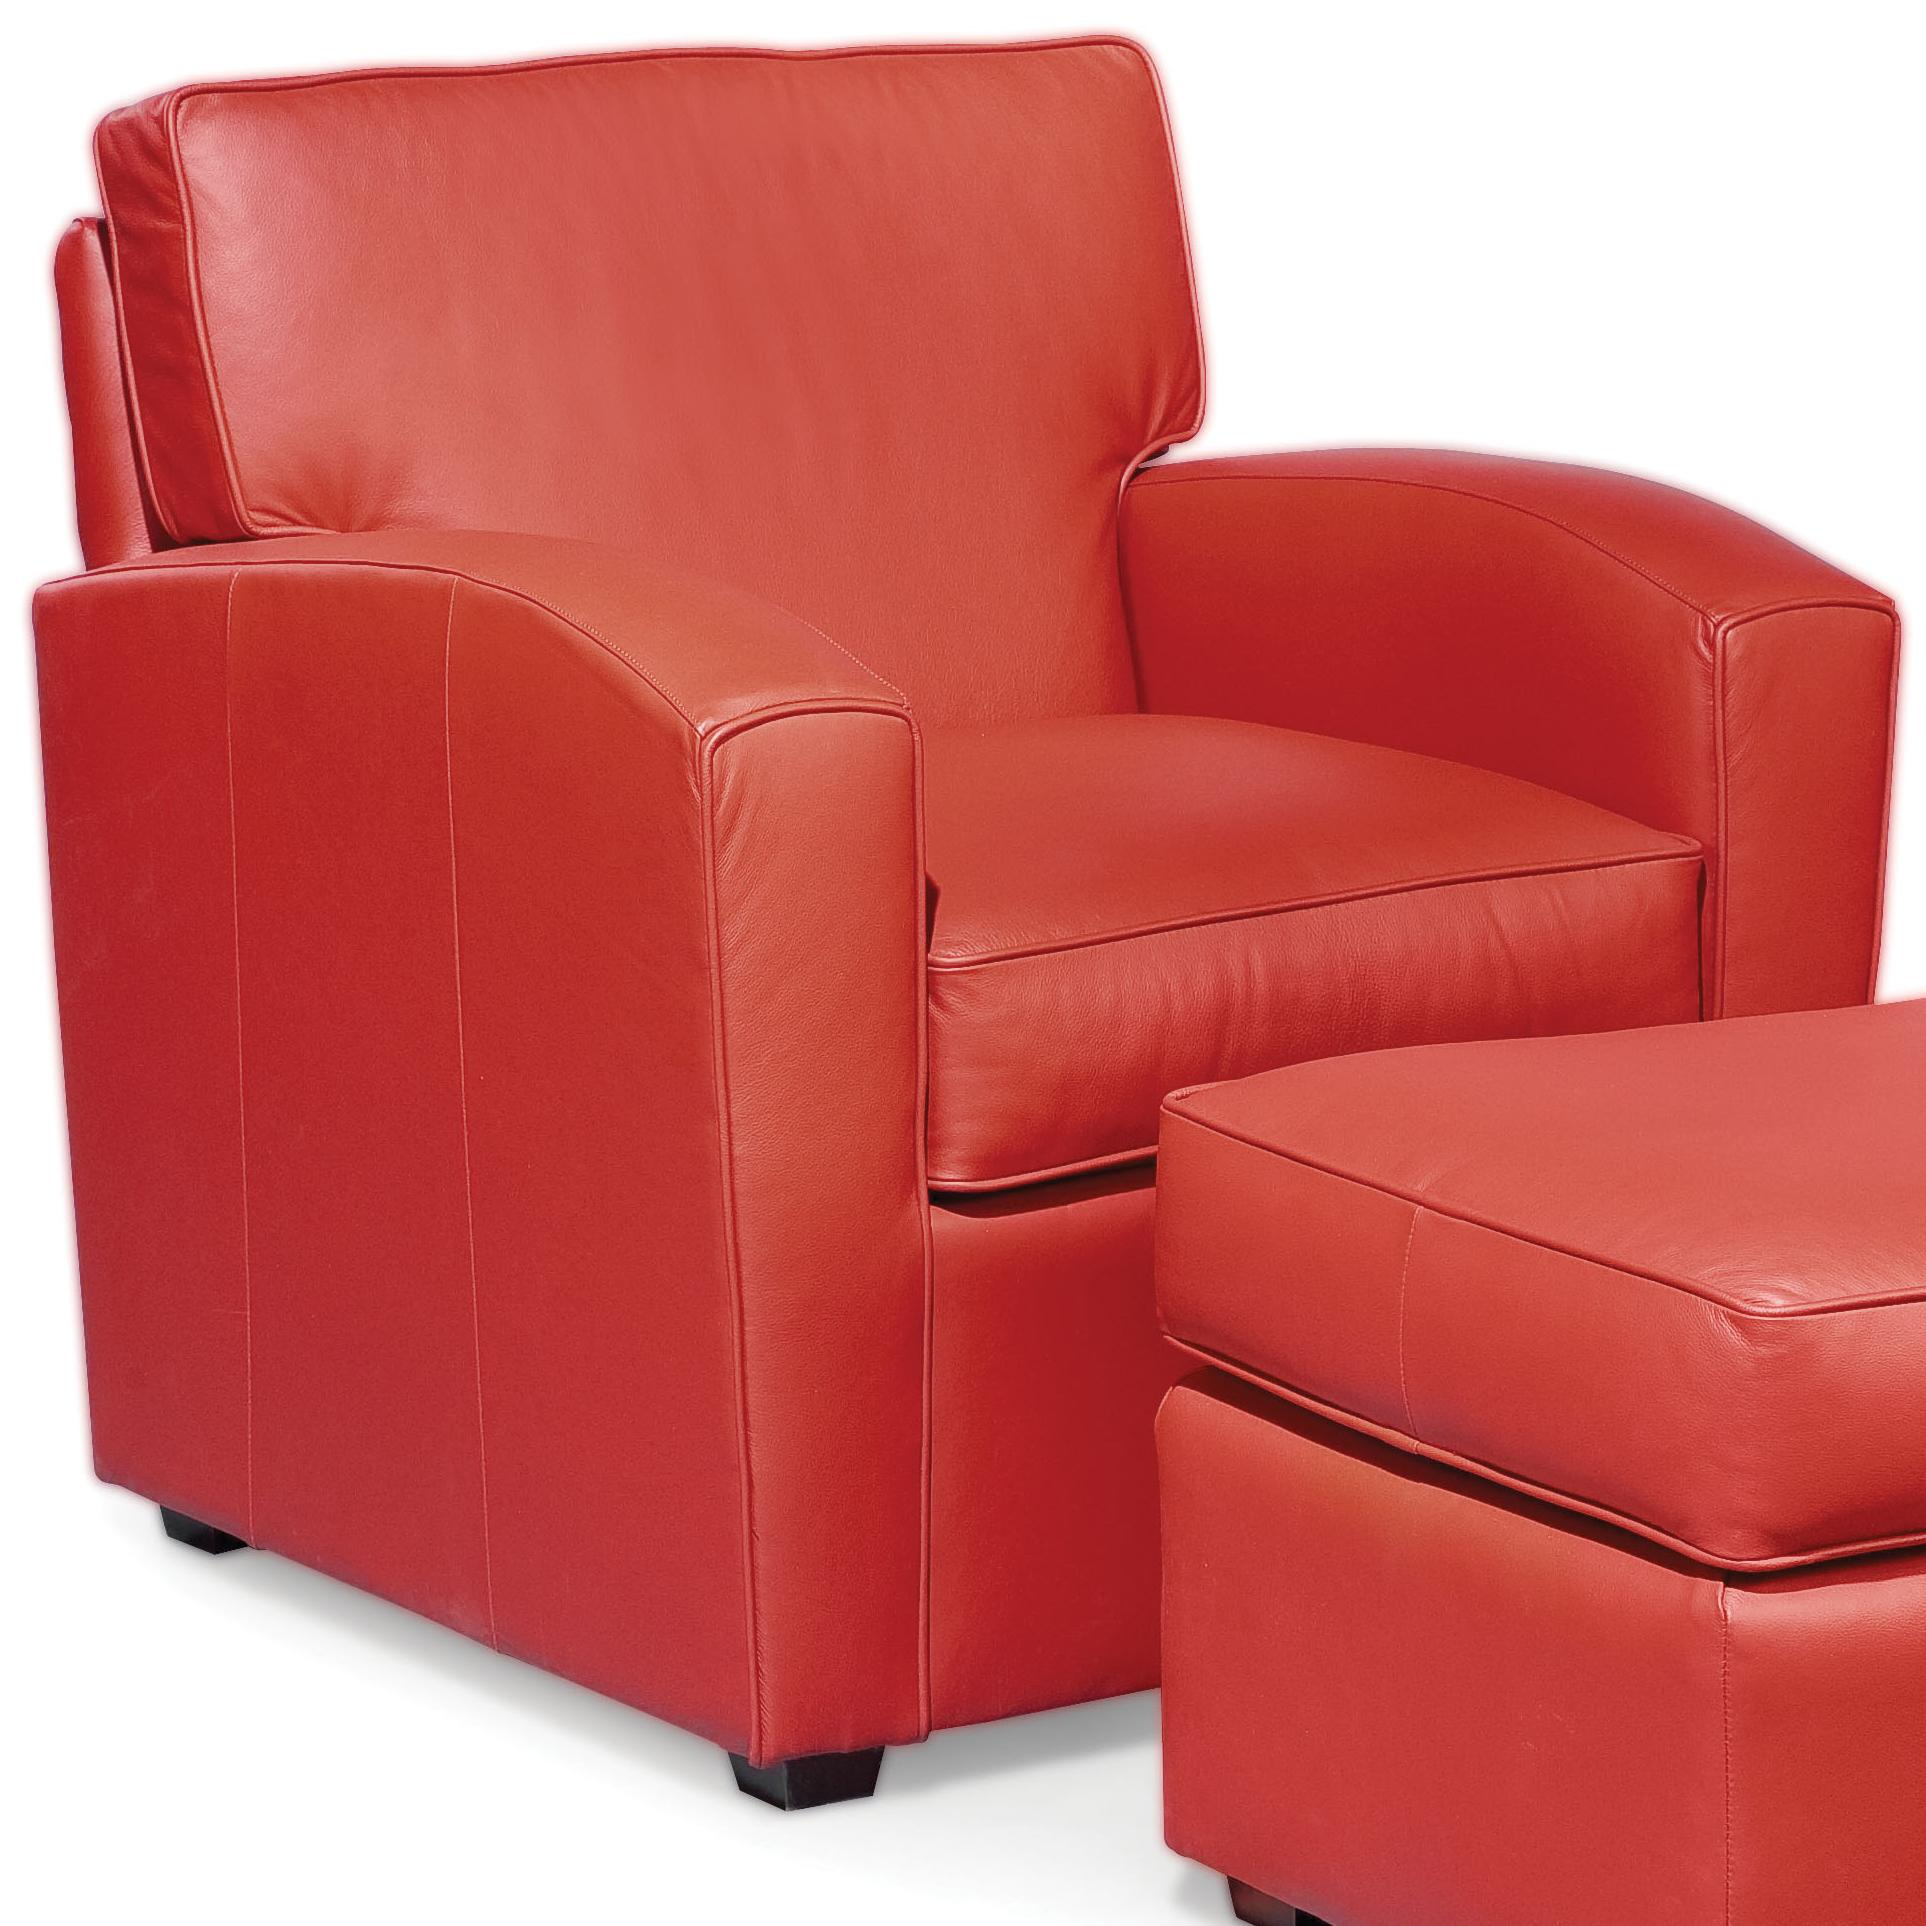 Fairfield Chairs Lounge Chair - Item Number: 6035-01